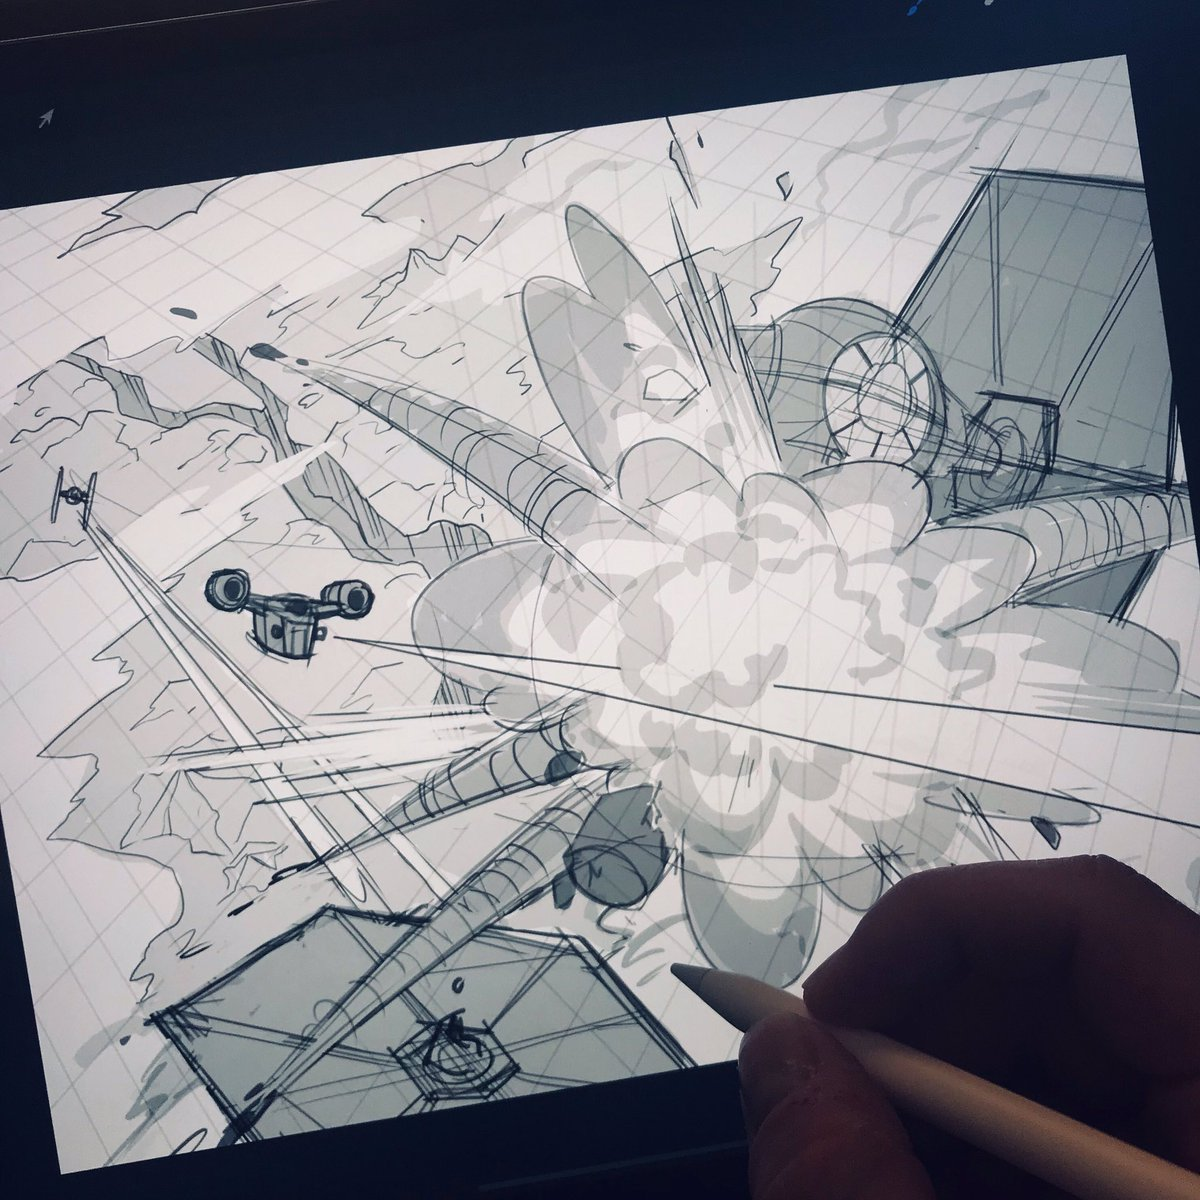 Roughing this one out in Pro Create 😁 Loved this scene from The Mandalorian episode 4 in season 2, and I'm aiming to capture the same level of detail in this piece. Stay tuned for more!  #themandalorian #dogfight #razorcrest #tiefighters #thisistheway #ipadpro #procreate #sketch https://t.co/BfGUc4s6Mg